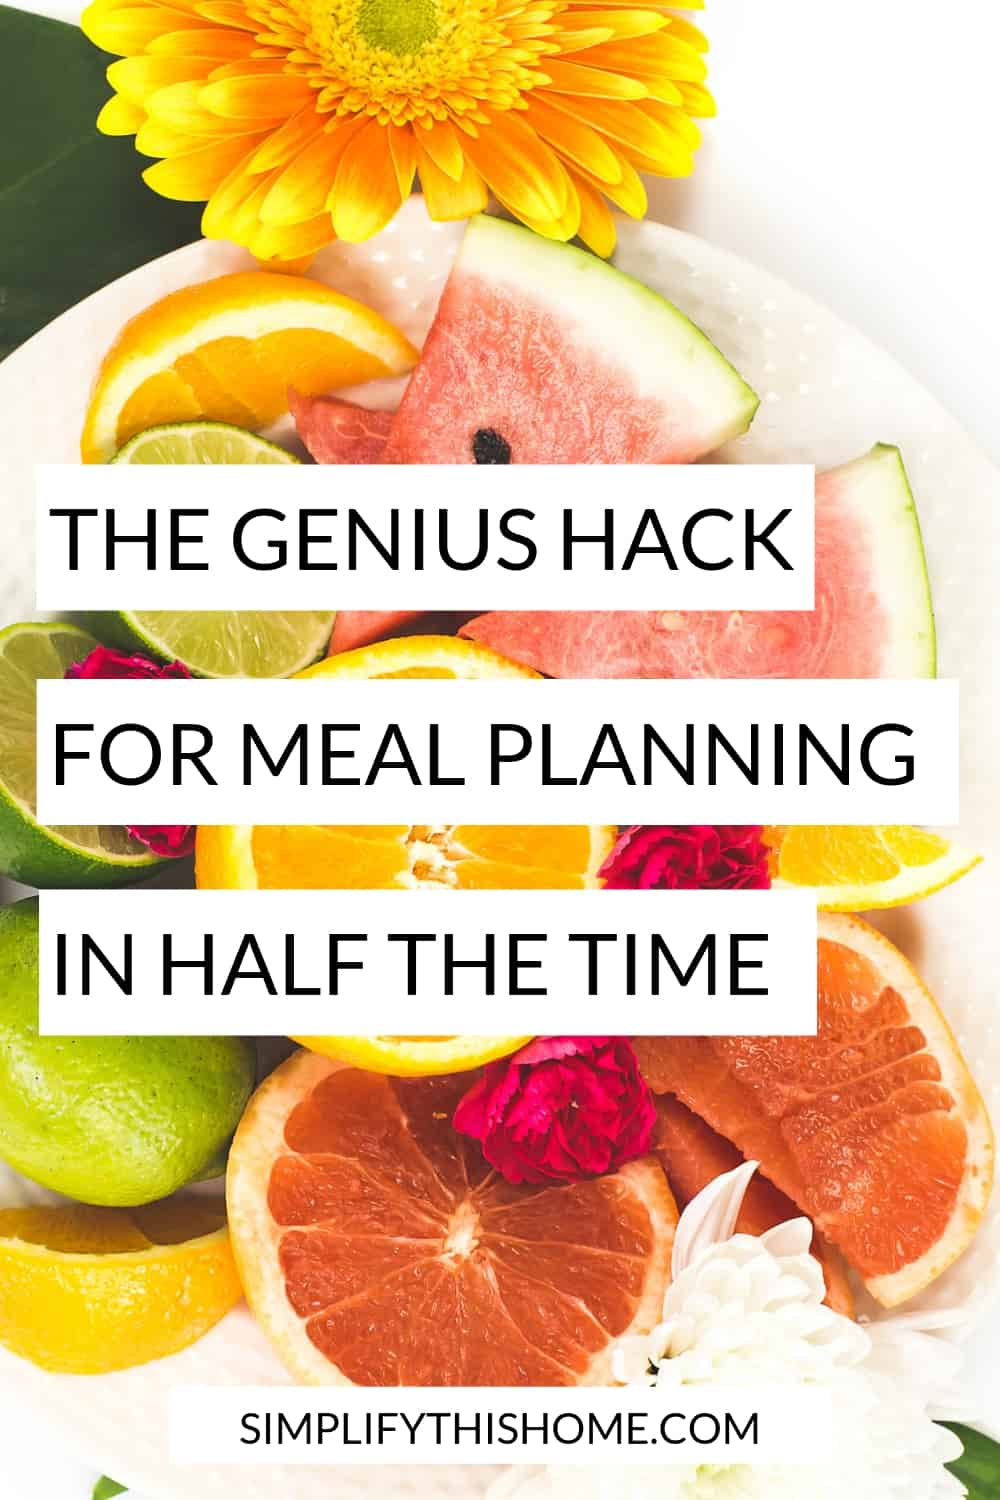 Hack for meal planning in half the time